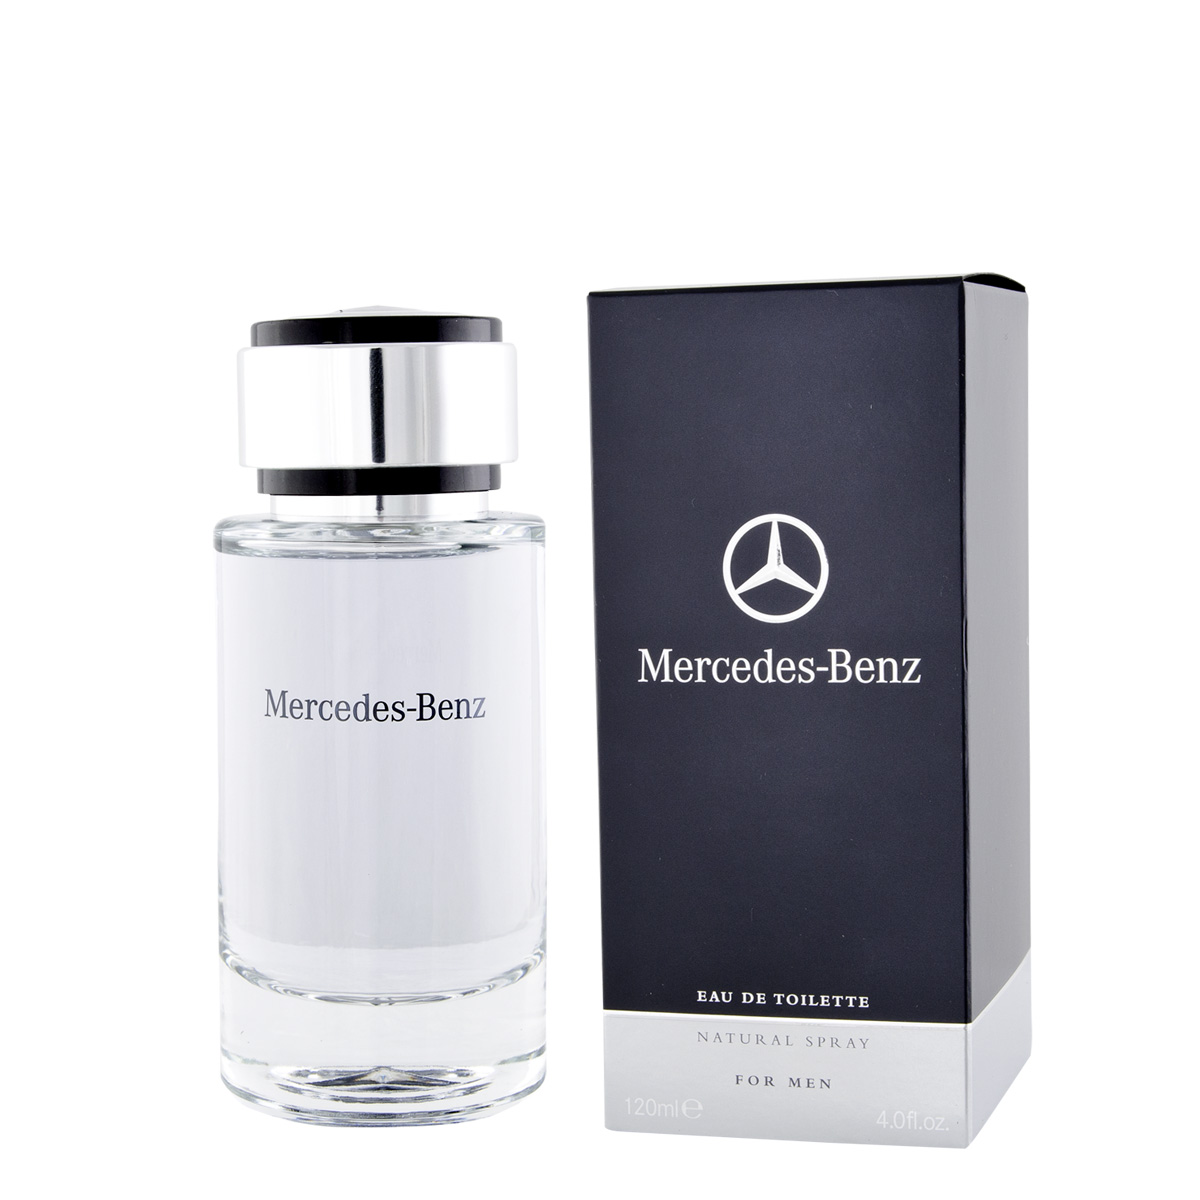 Mercedes-Benz Mercedes-Benz Eau De Toilette 120 ml (man) 72412